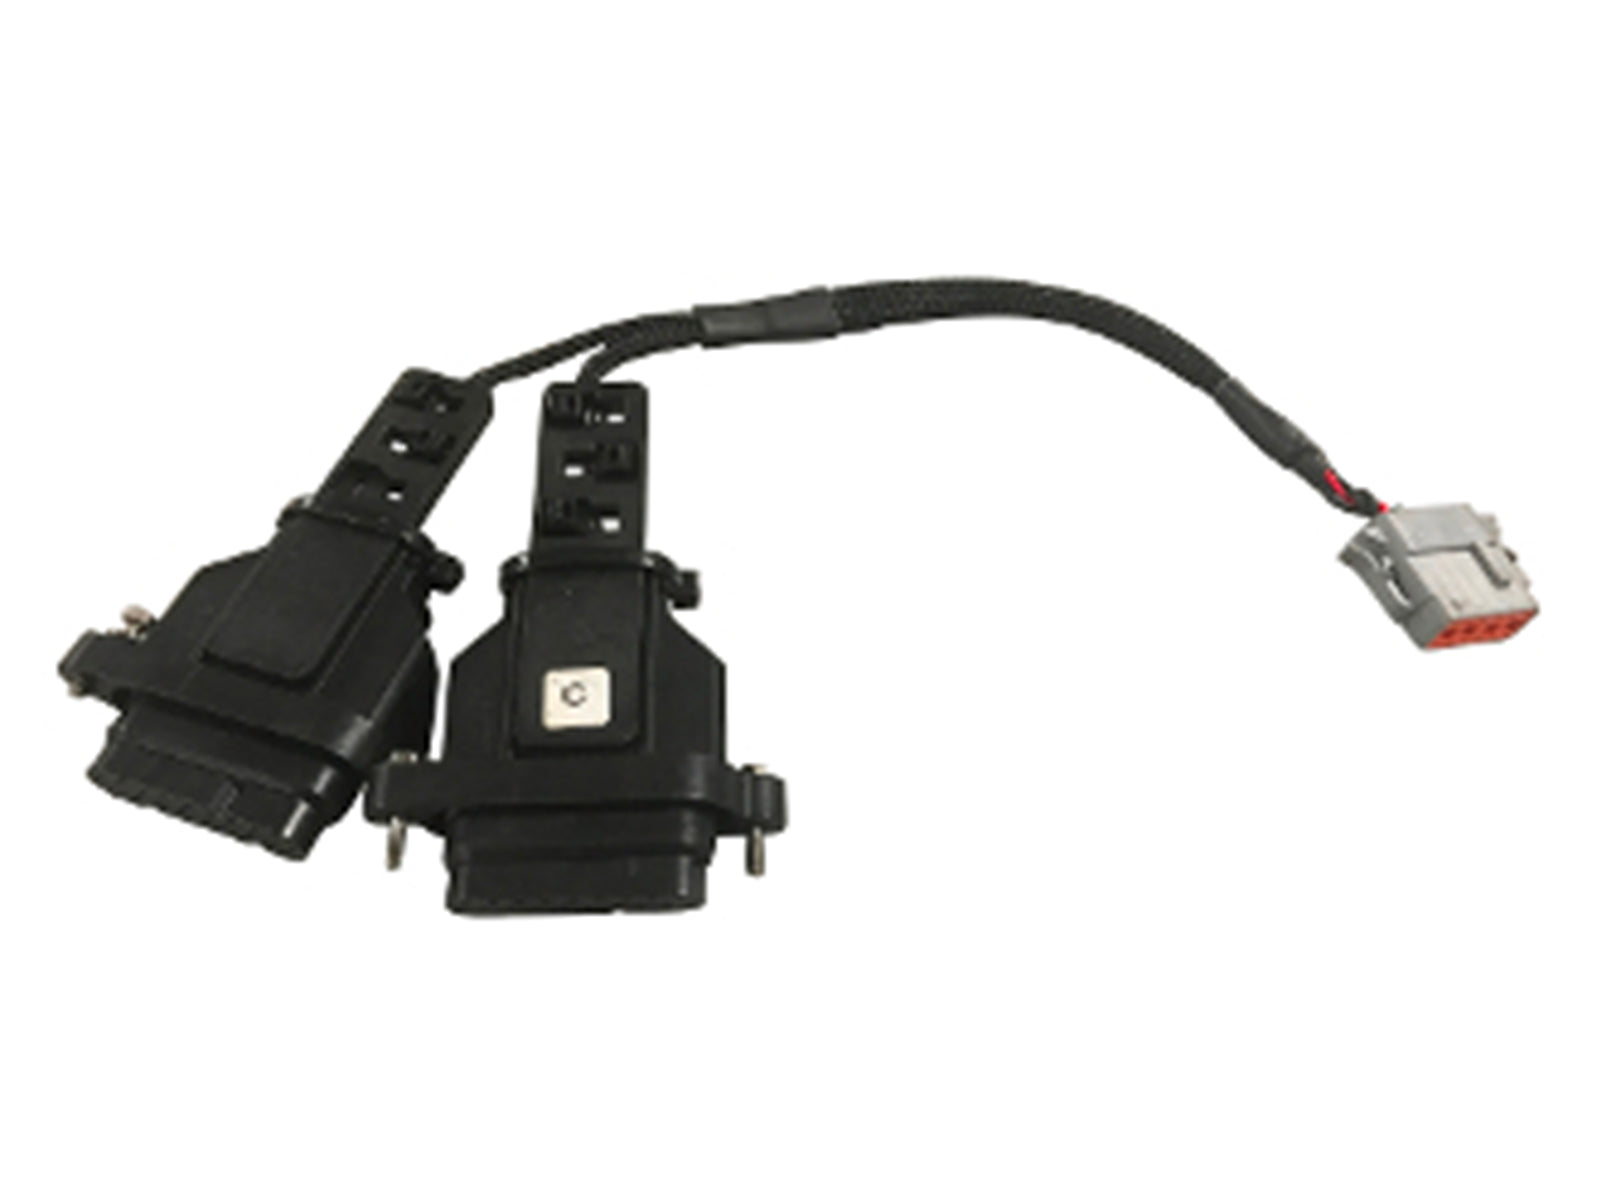 Diesel Laptops Bypass Breakout Cable for Cummins CELECT